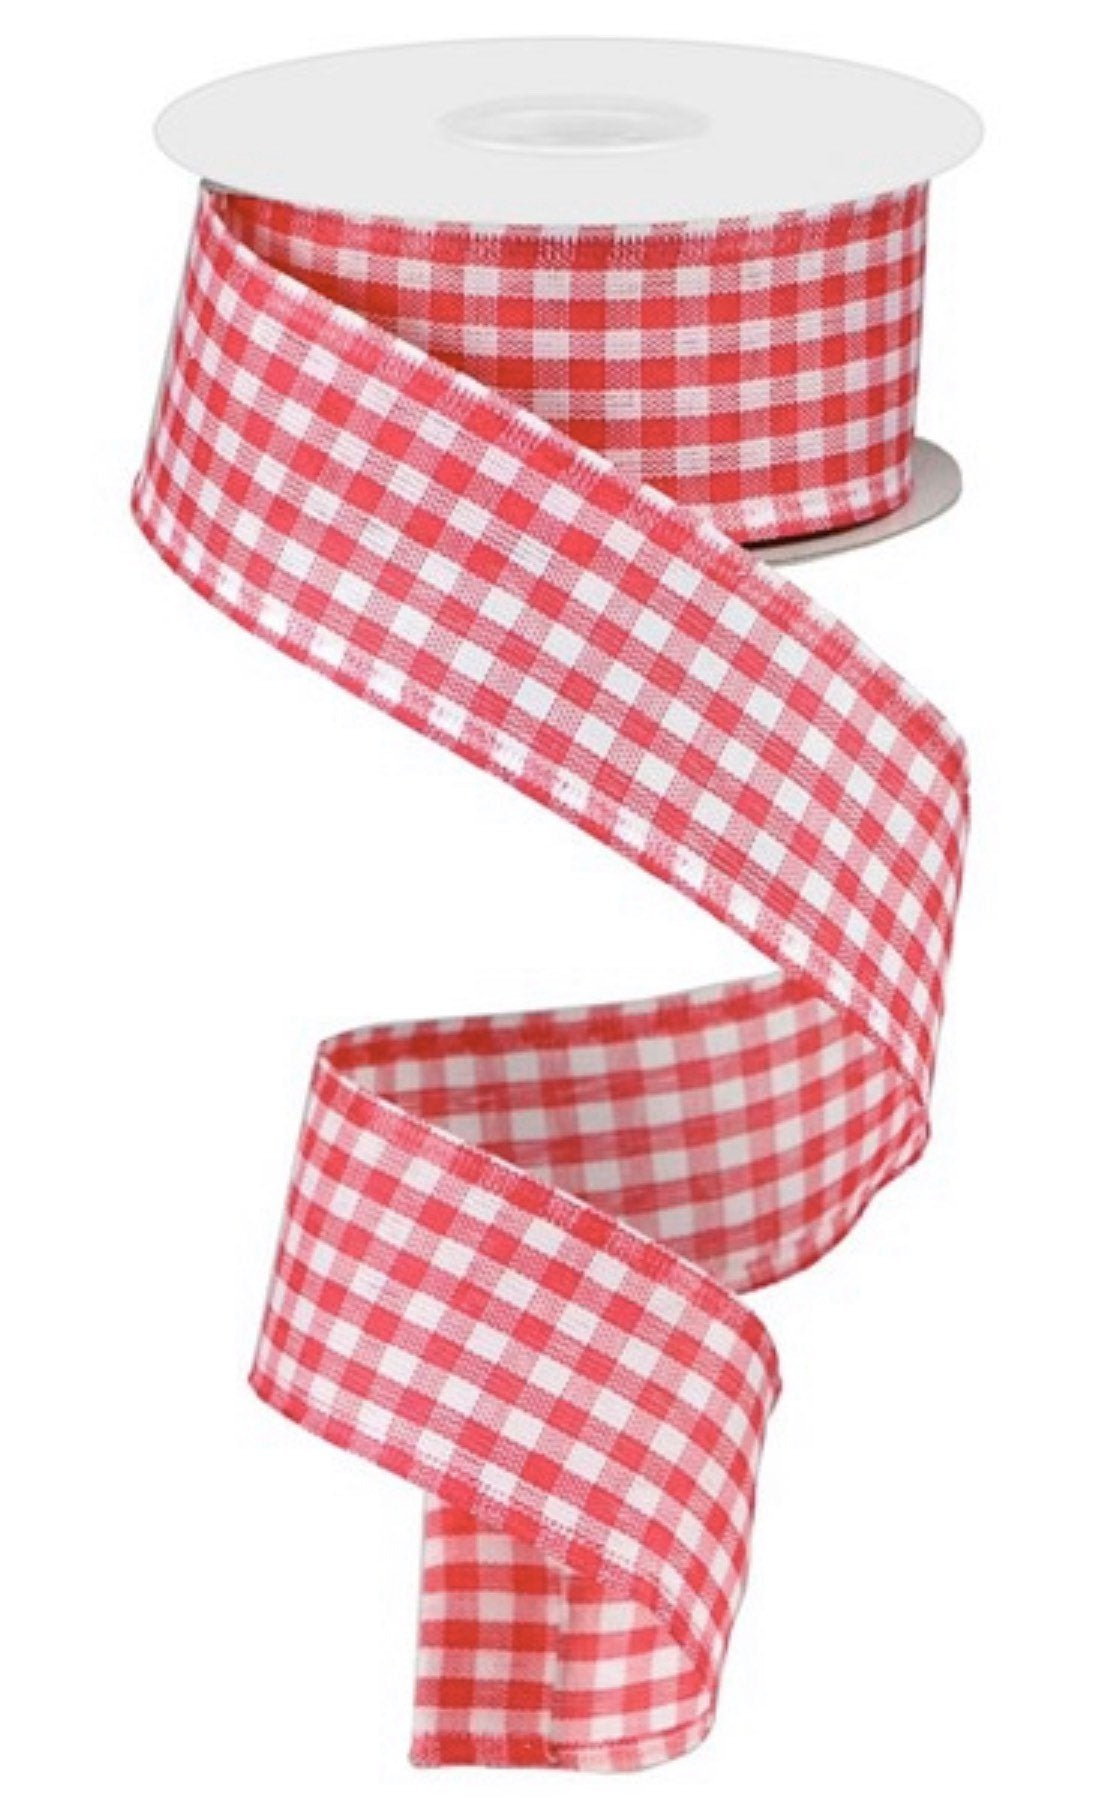 "Pink Gingham ribbon, 10 yards wired ribbon, hot pink And white gingham plaid wired ribbon, plaid ribbon, 1.5"" wired ribbon, wreath supplies"